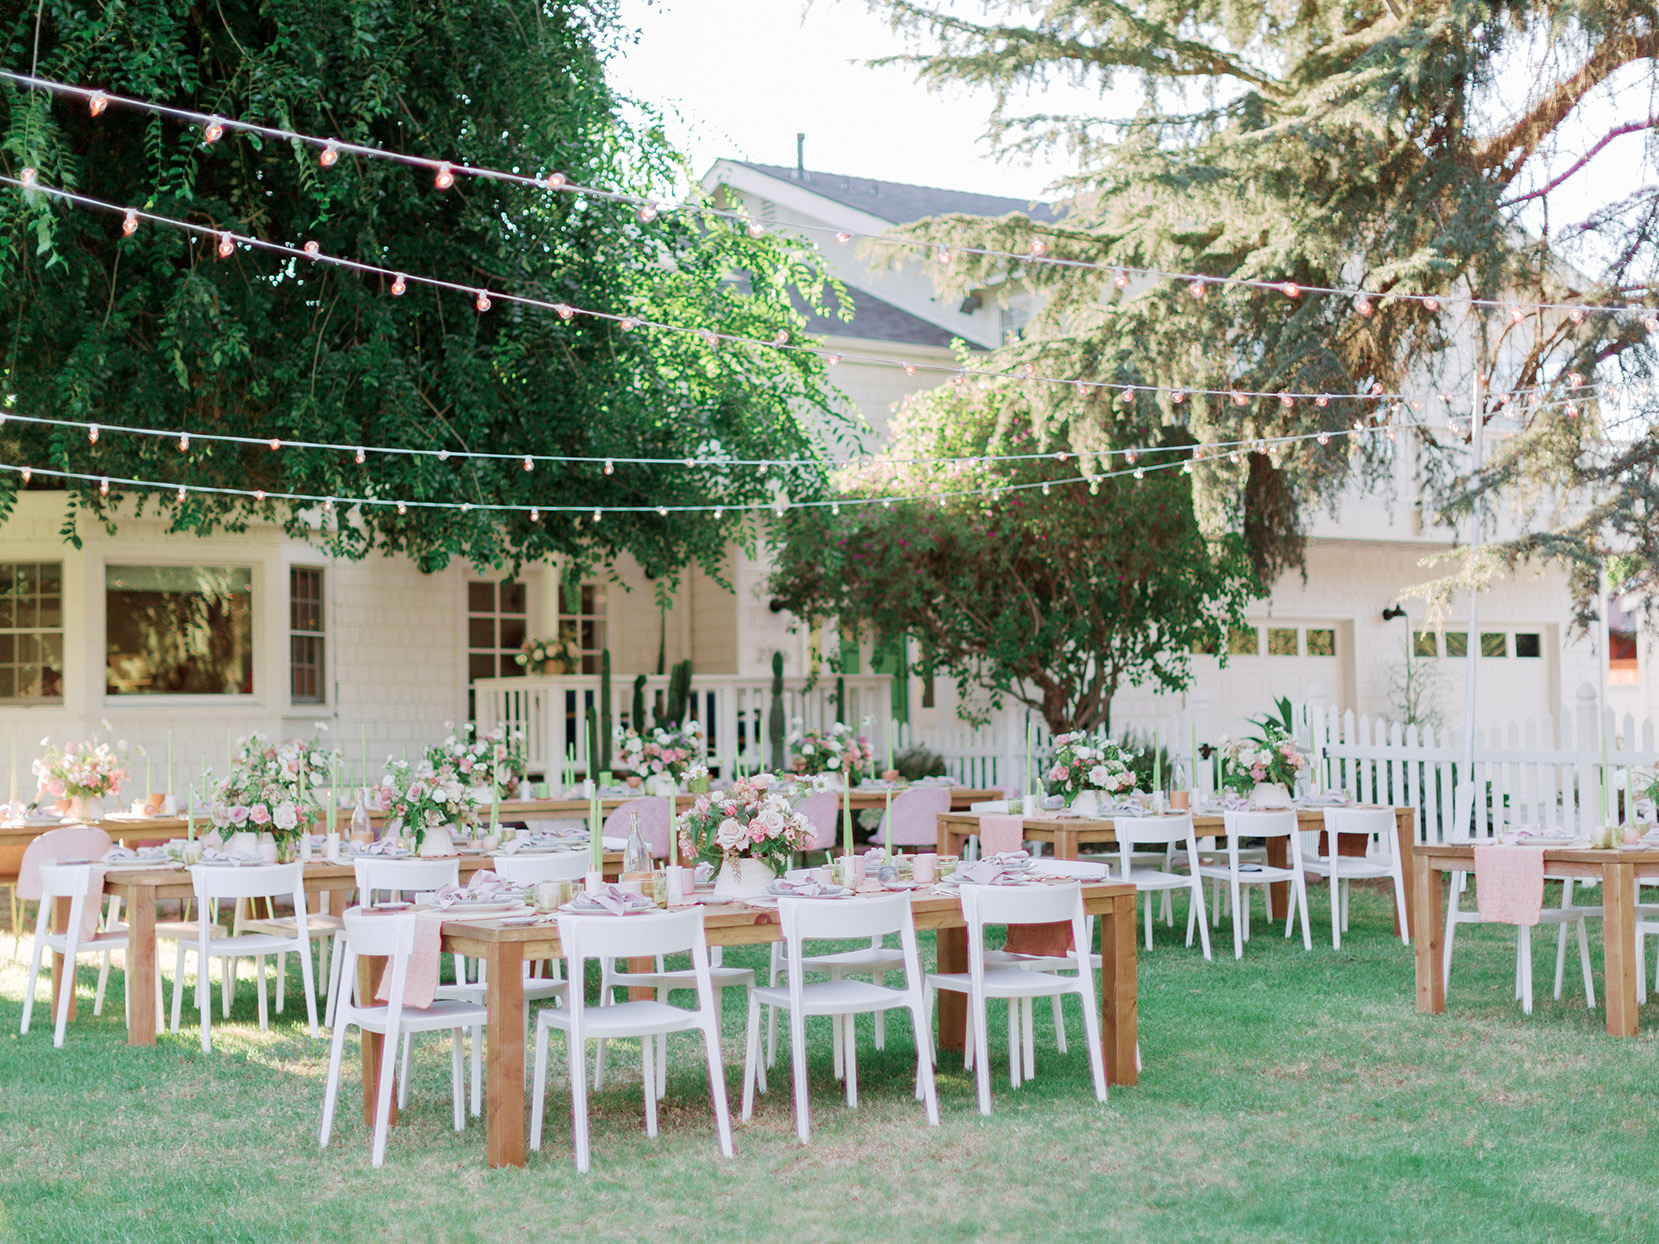 long wooden tables outdoors with white chairs and overhead string lights